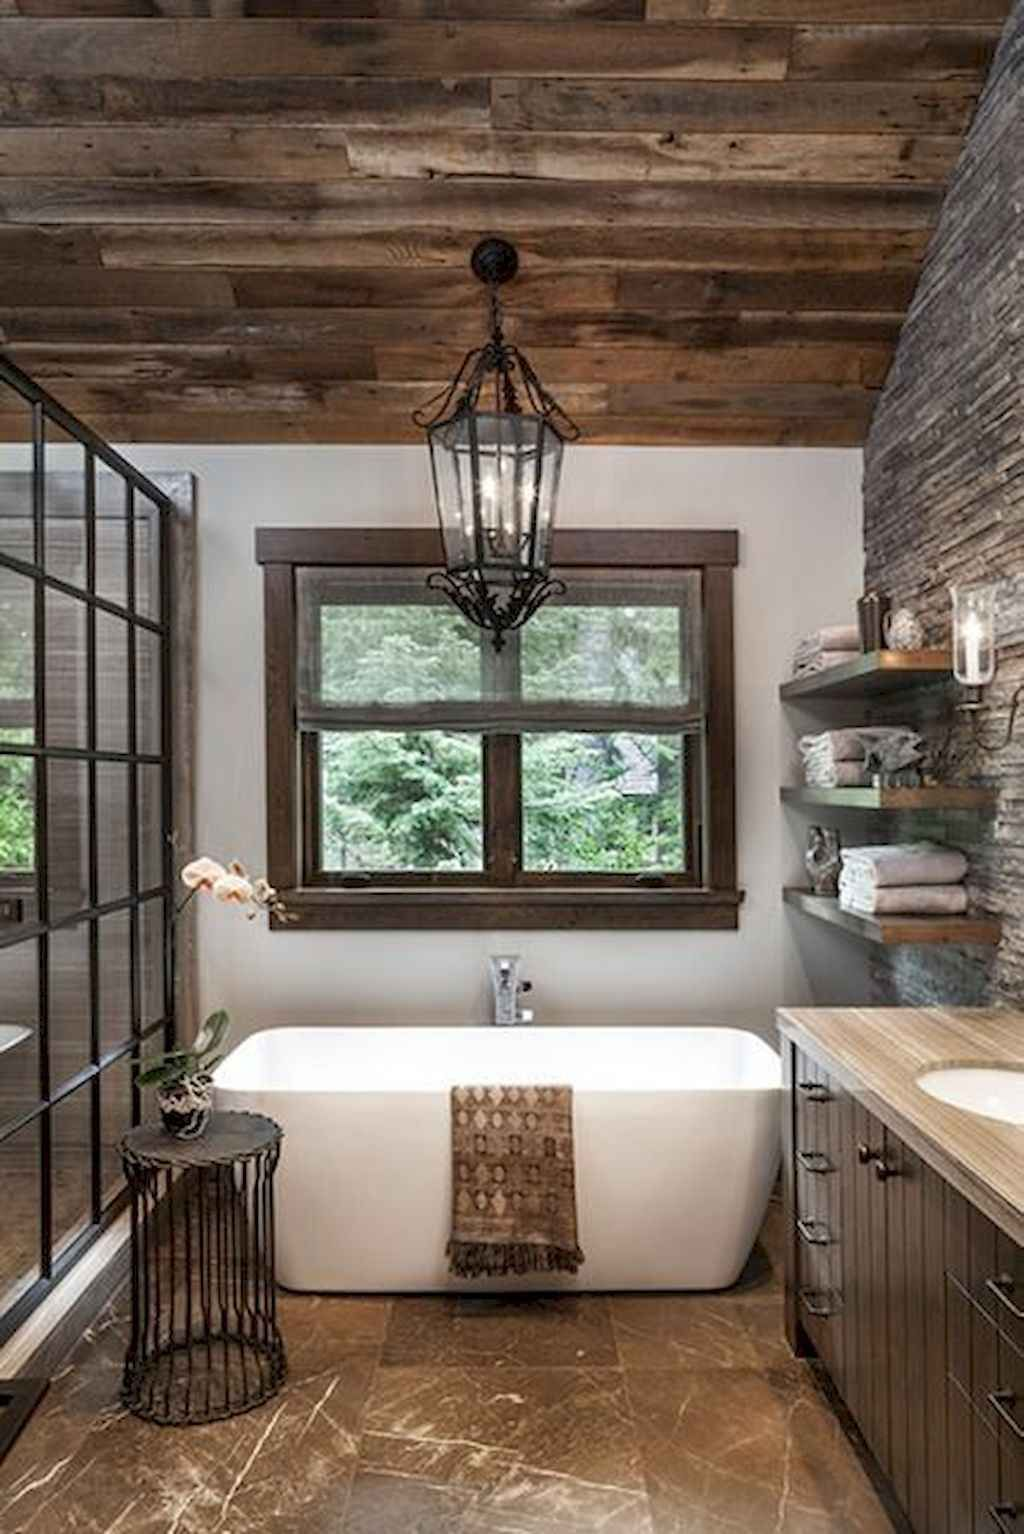 30 beautiful master bathroom remodel ideas in 2020 (With ...